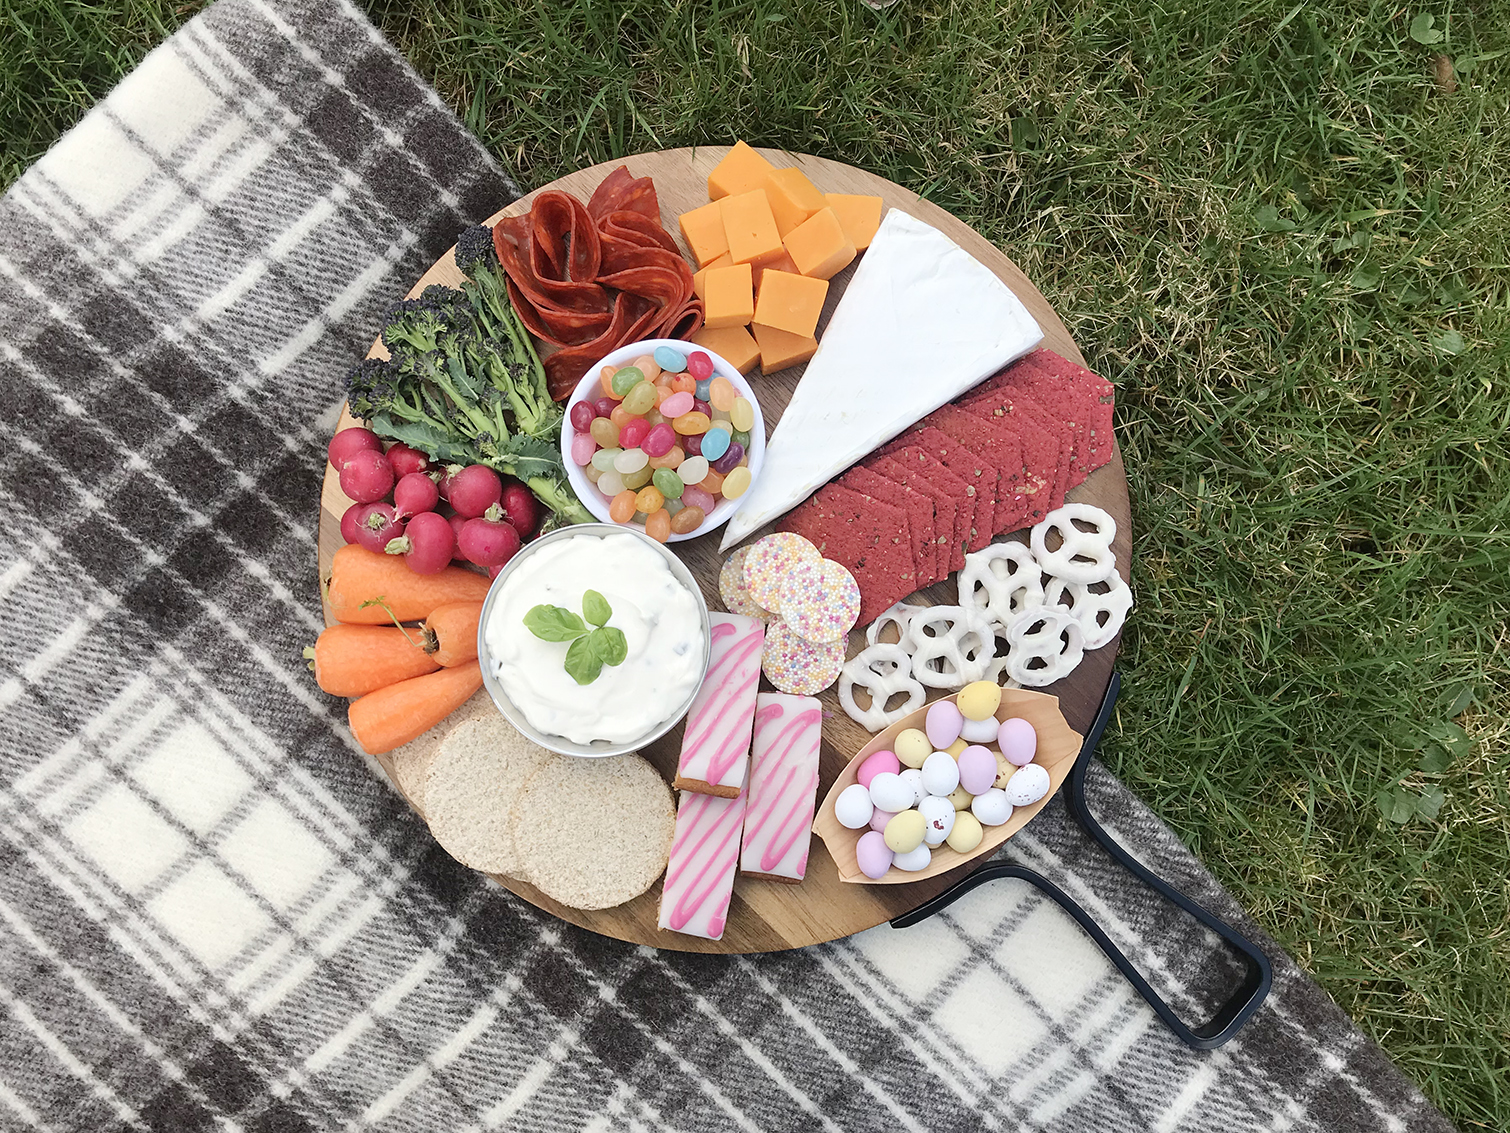 sweet and savoury snack board in bright colors